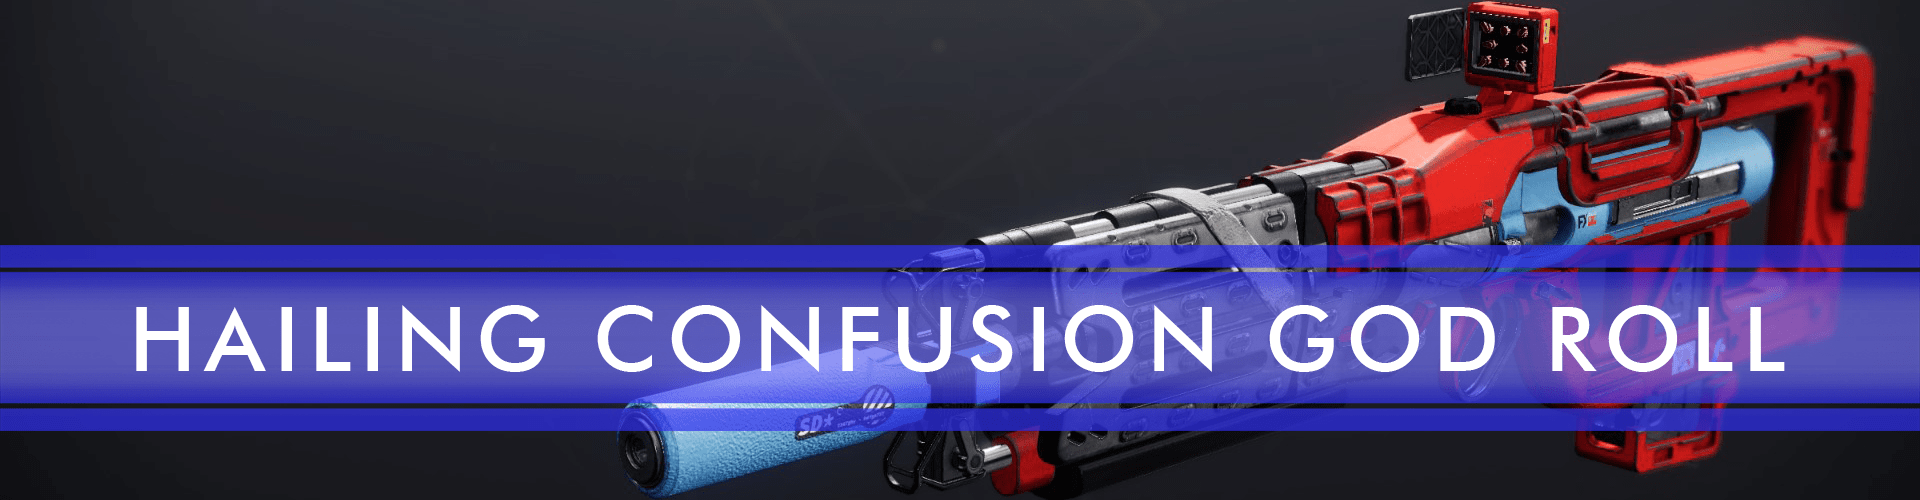 hailing confuision god roll boost